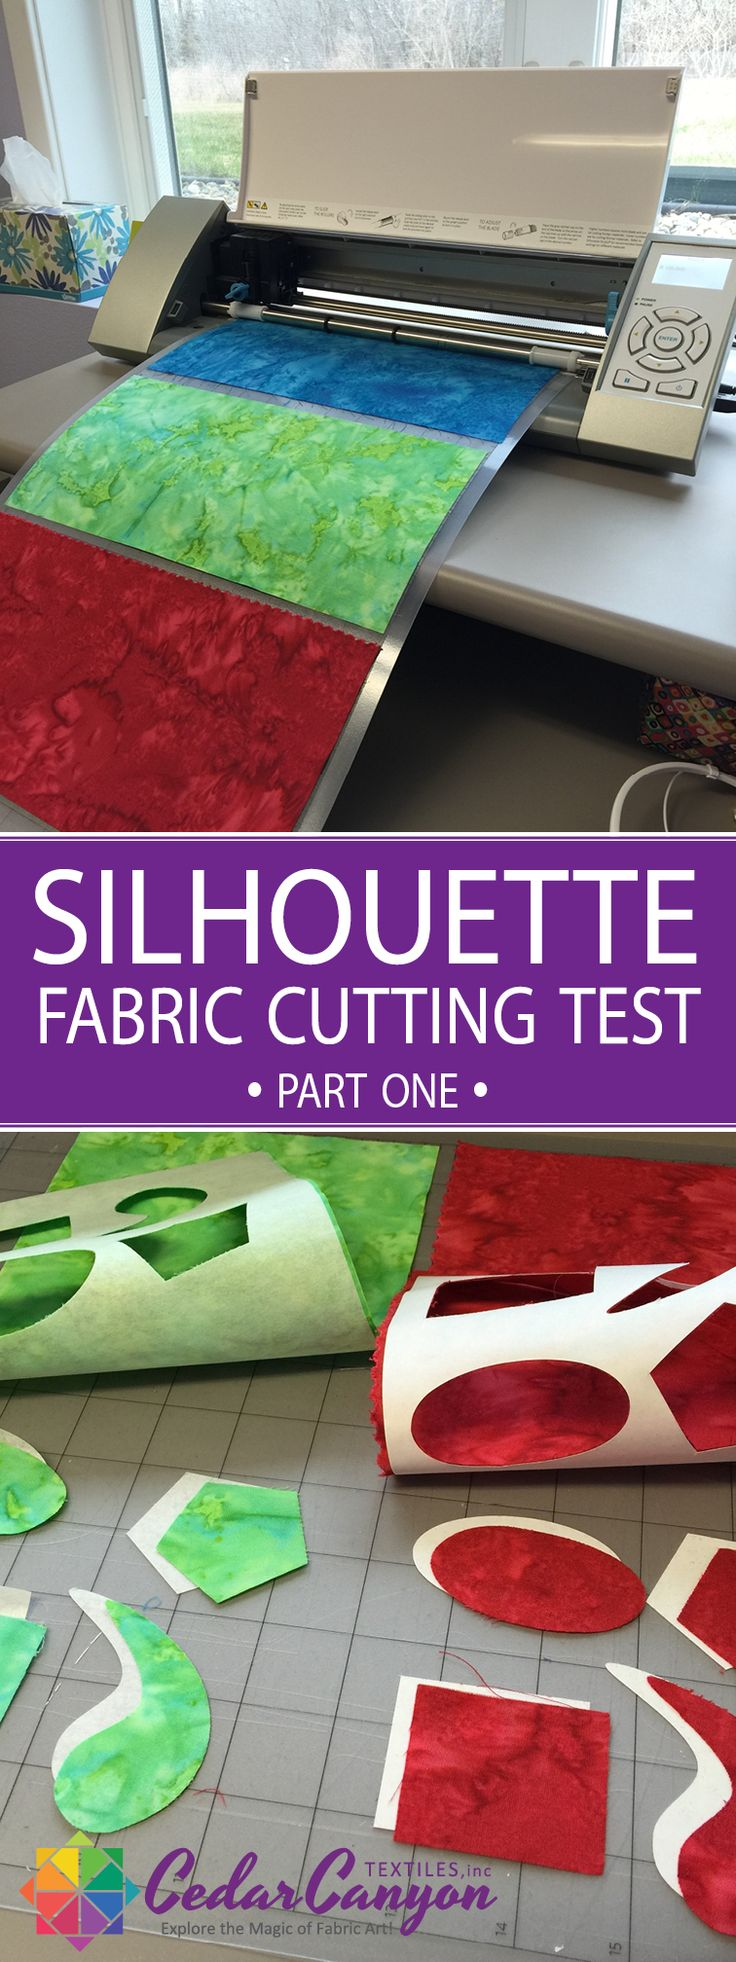 Two options for cutting fabric with a Silhouette Cameo cutter – without adding fusible web or fabric stiffener.